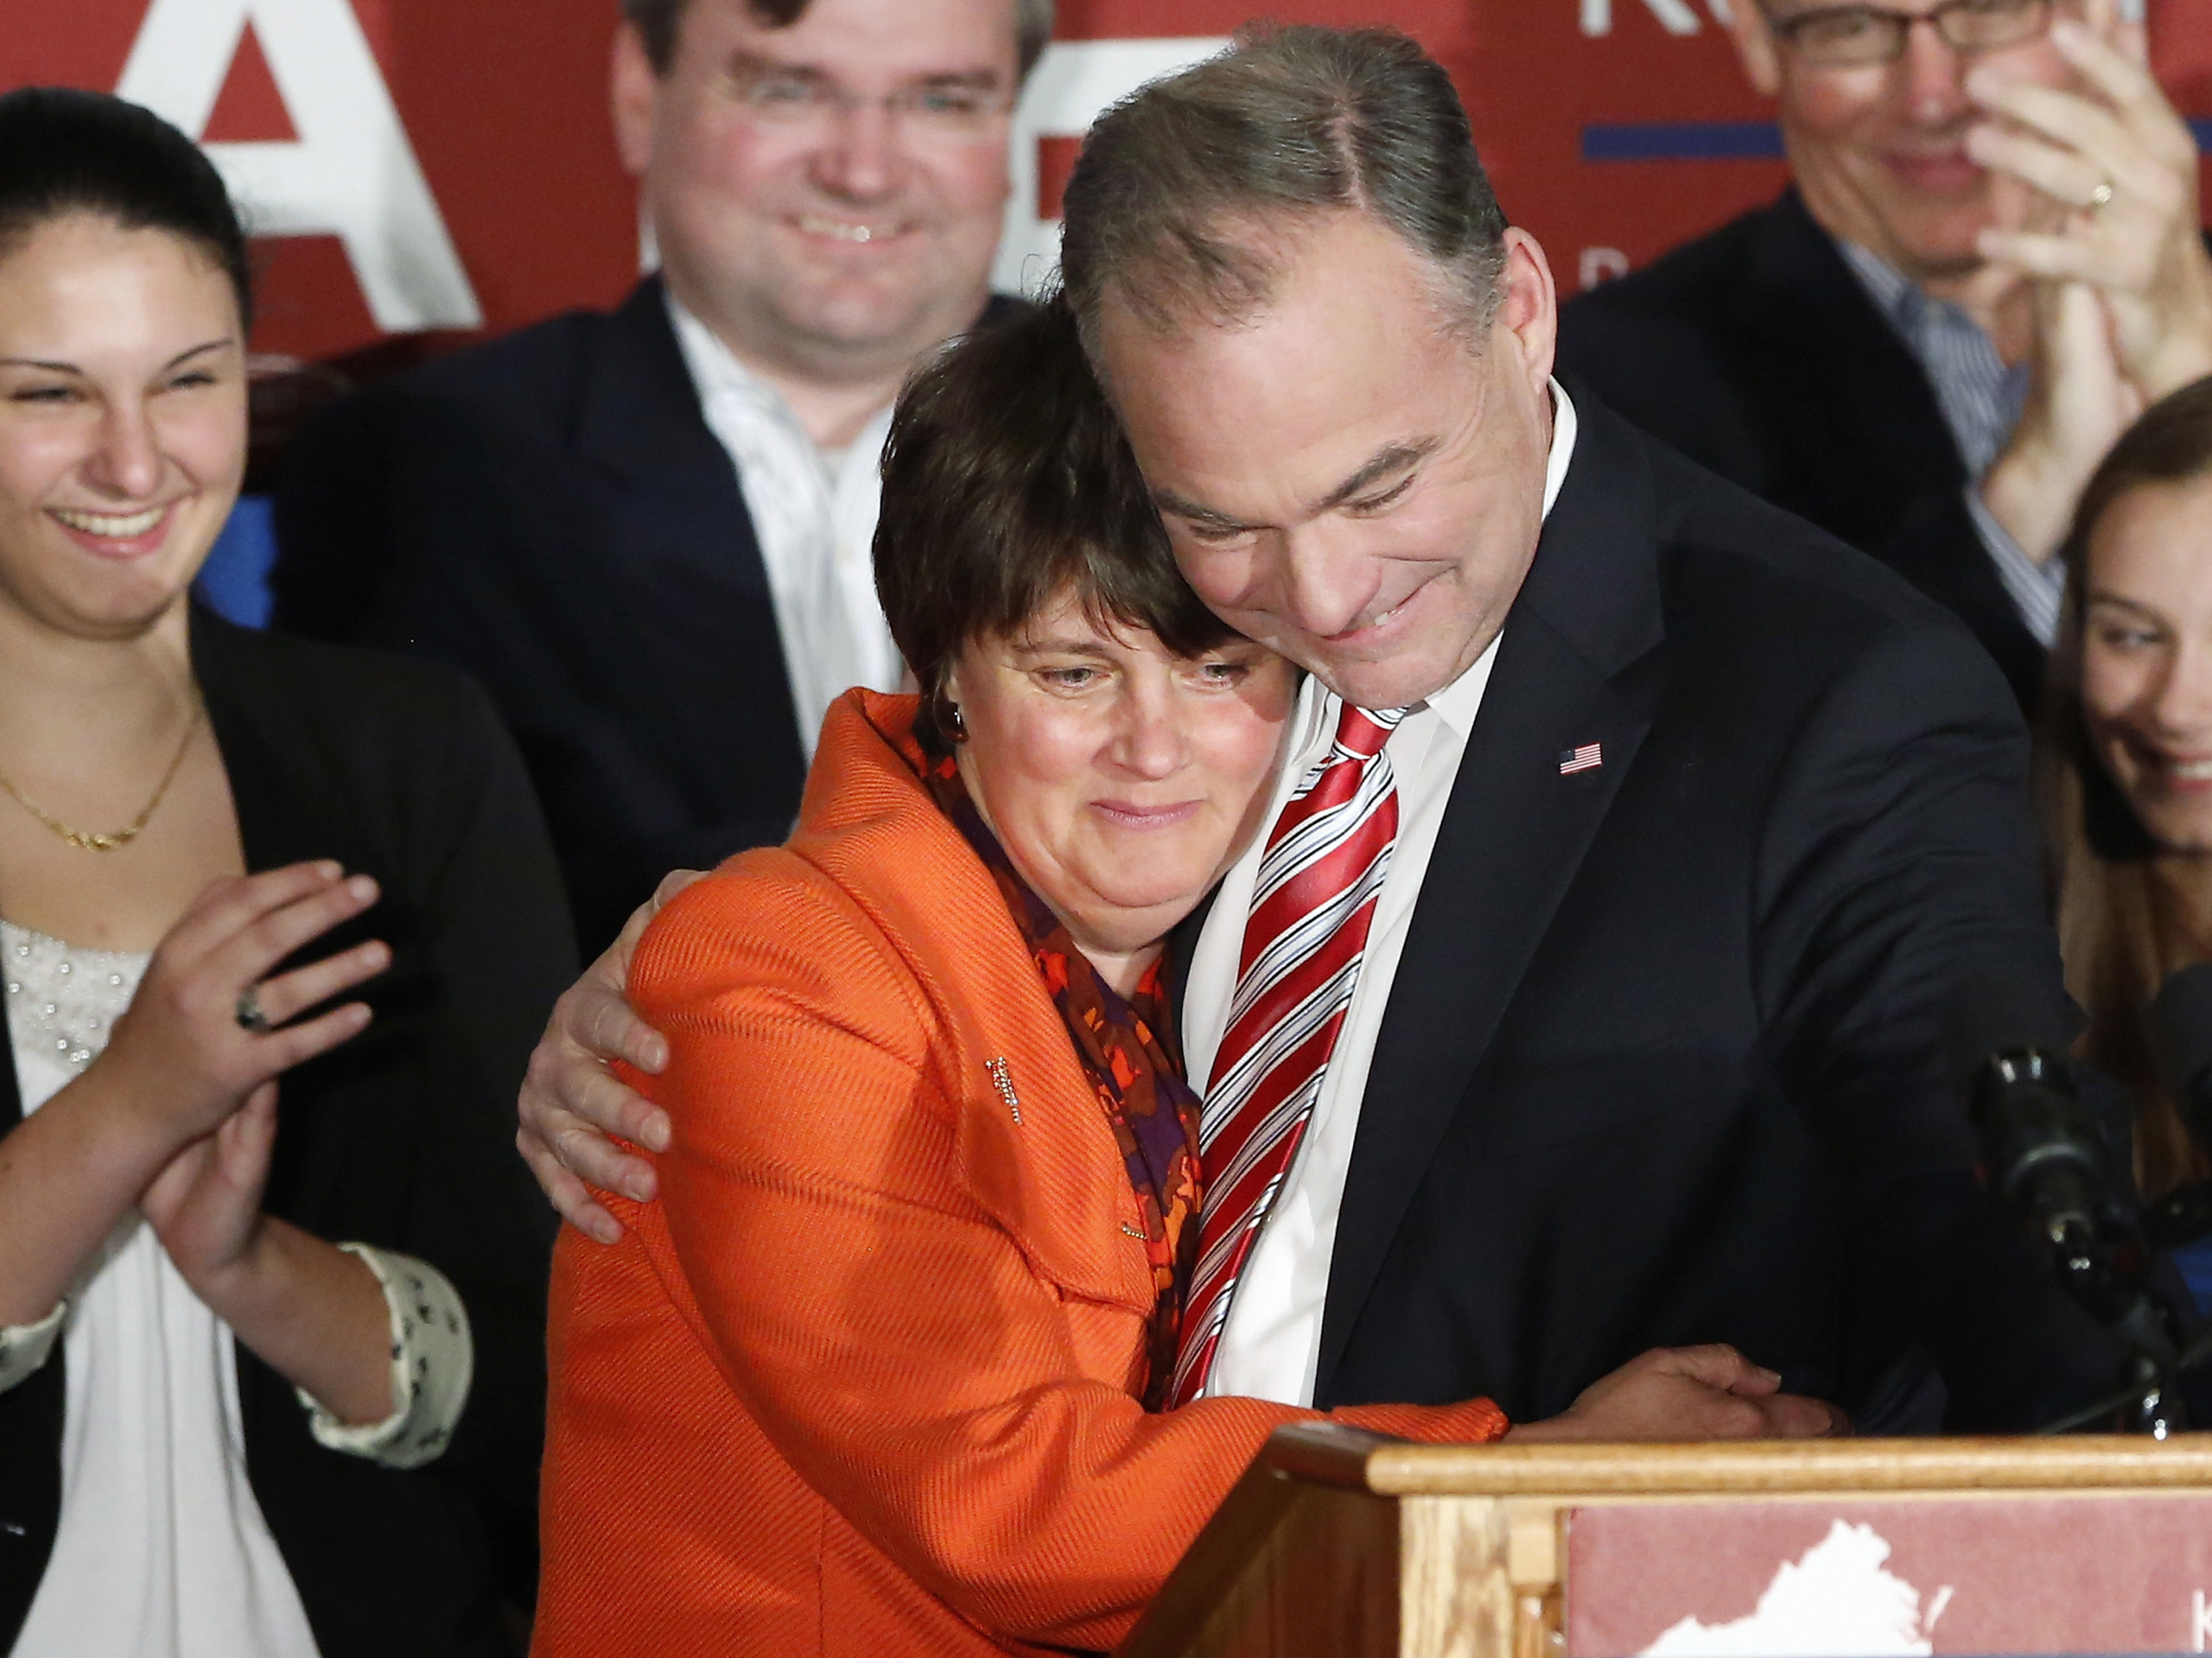 U.S. Senator-elect Tim Kaine hugs his wife Anne Holton as he celebrates his senate race victory on stage with supporters in Richmond on Nov. 6, 2012.